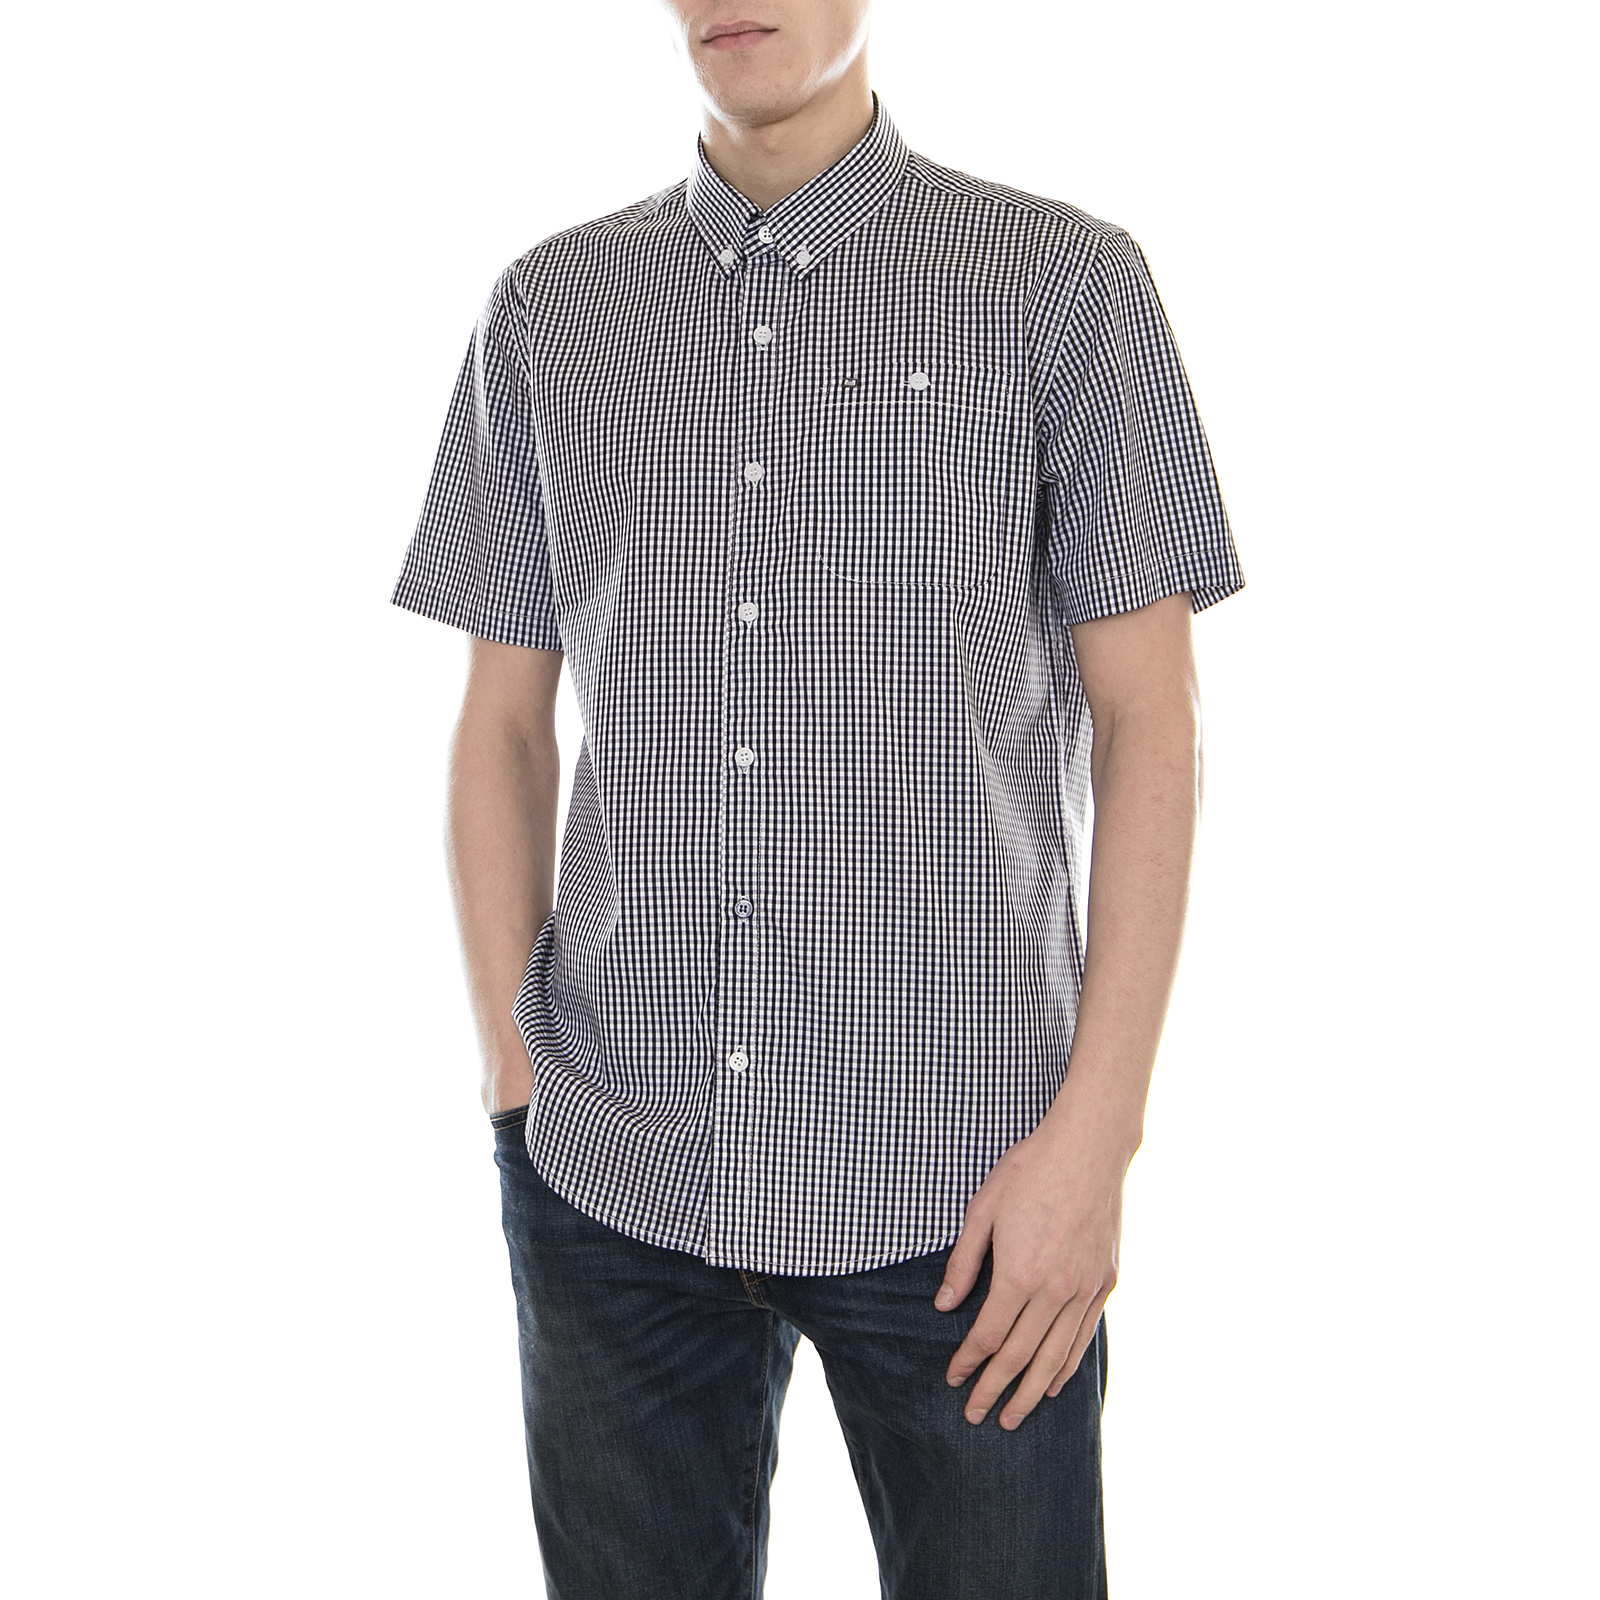 5a544aaa91 Weekend Offender Shirts Baum Navy White Multicolour nocqca1018-Casual Shirts    Tops